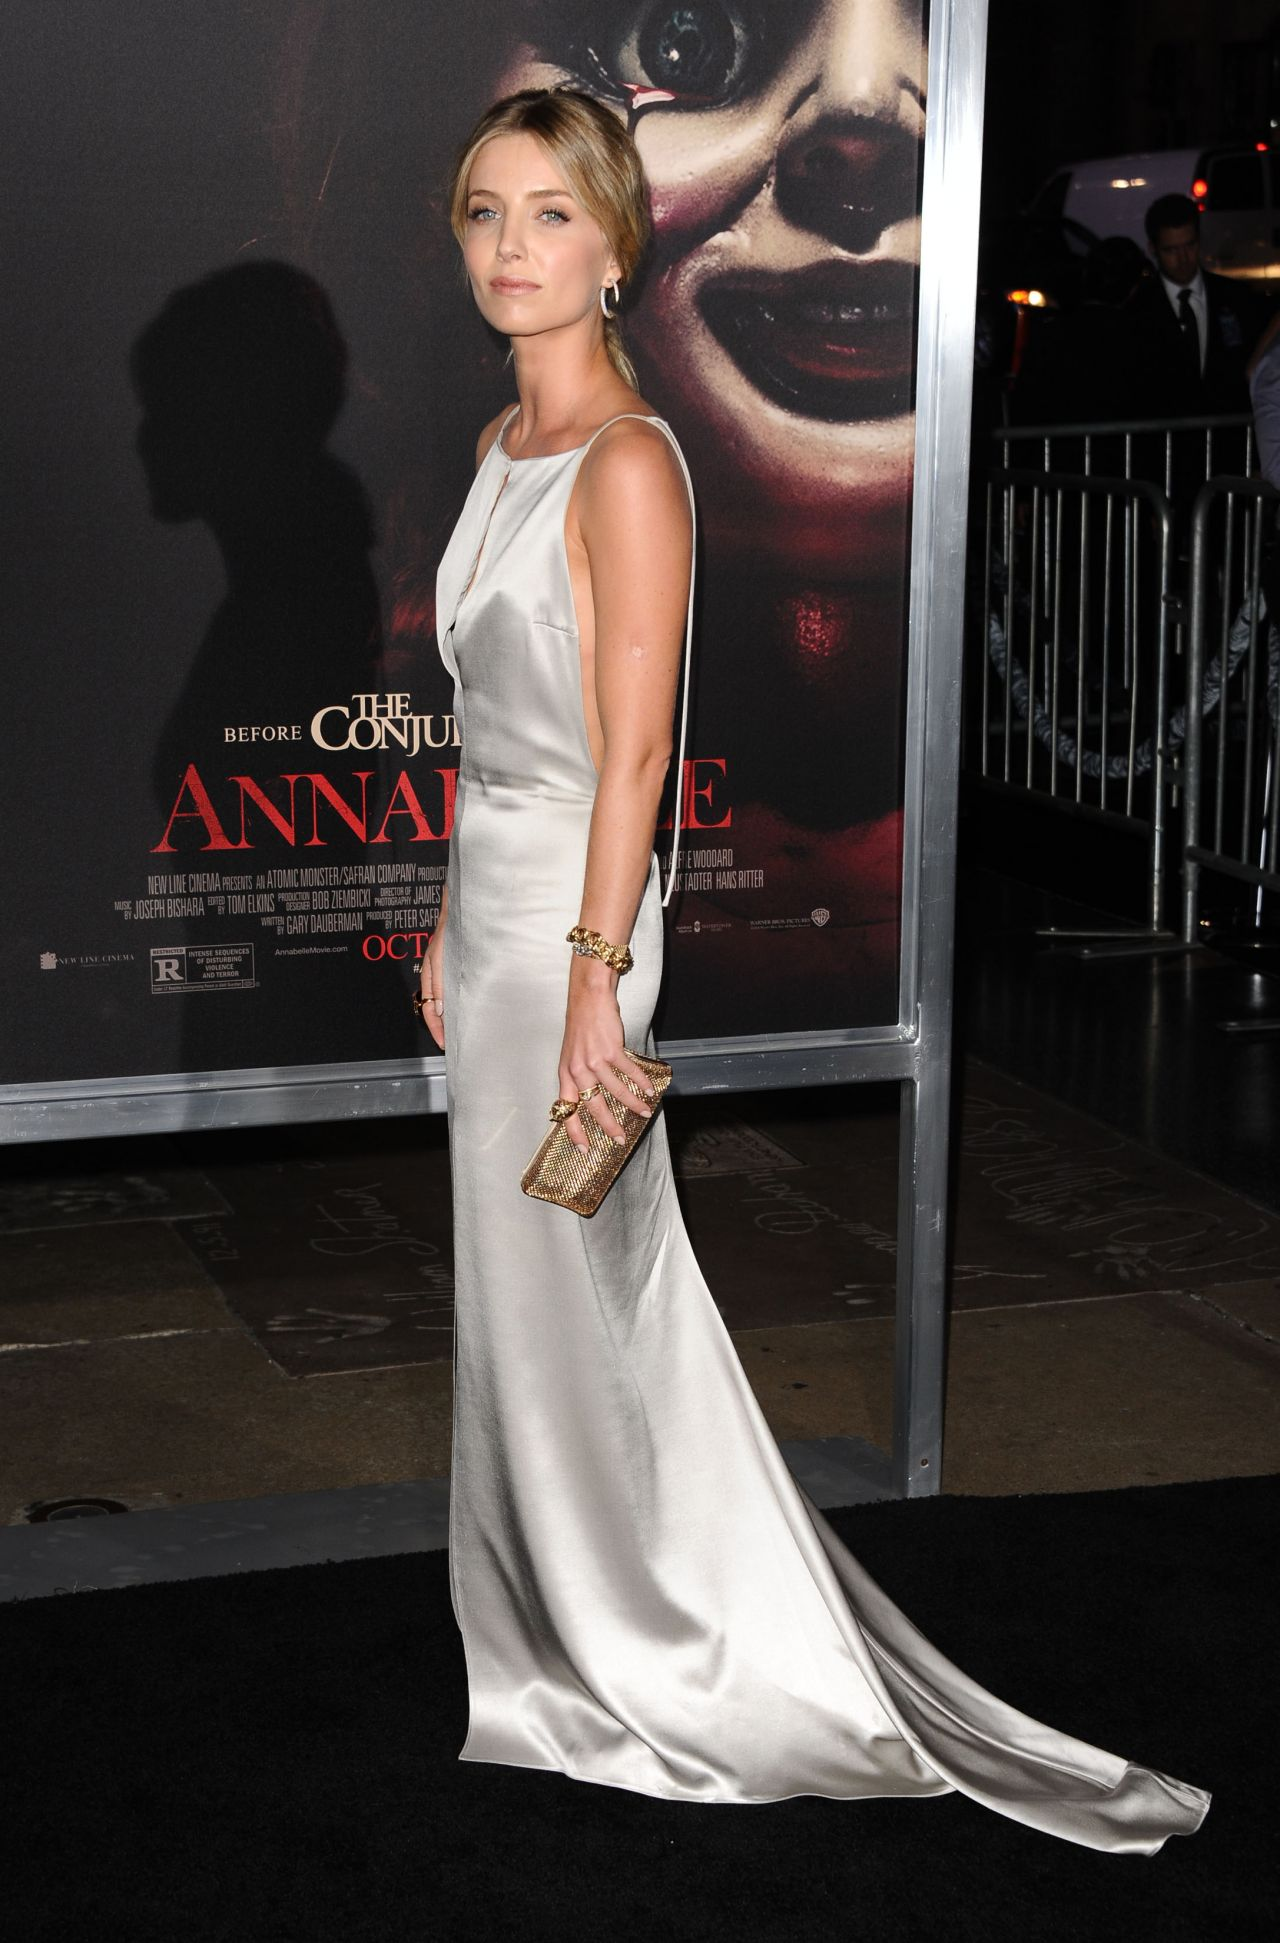 annabelle-wallis-annabelle-screening-in-hollywood_14